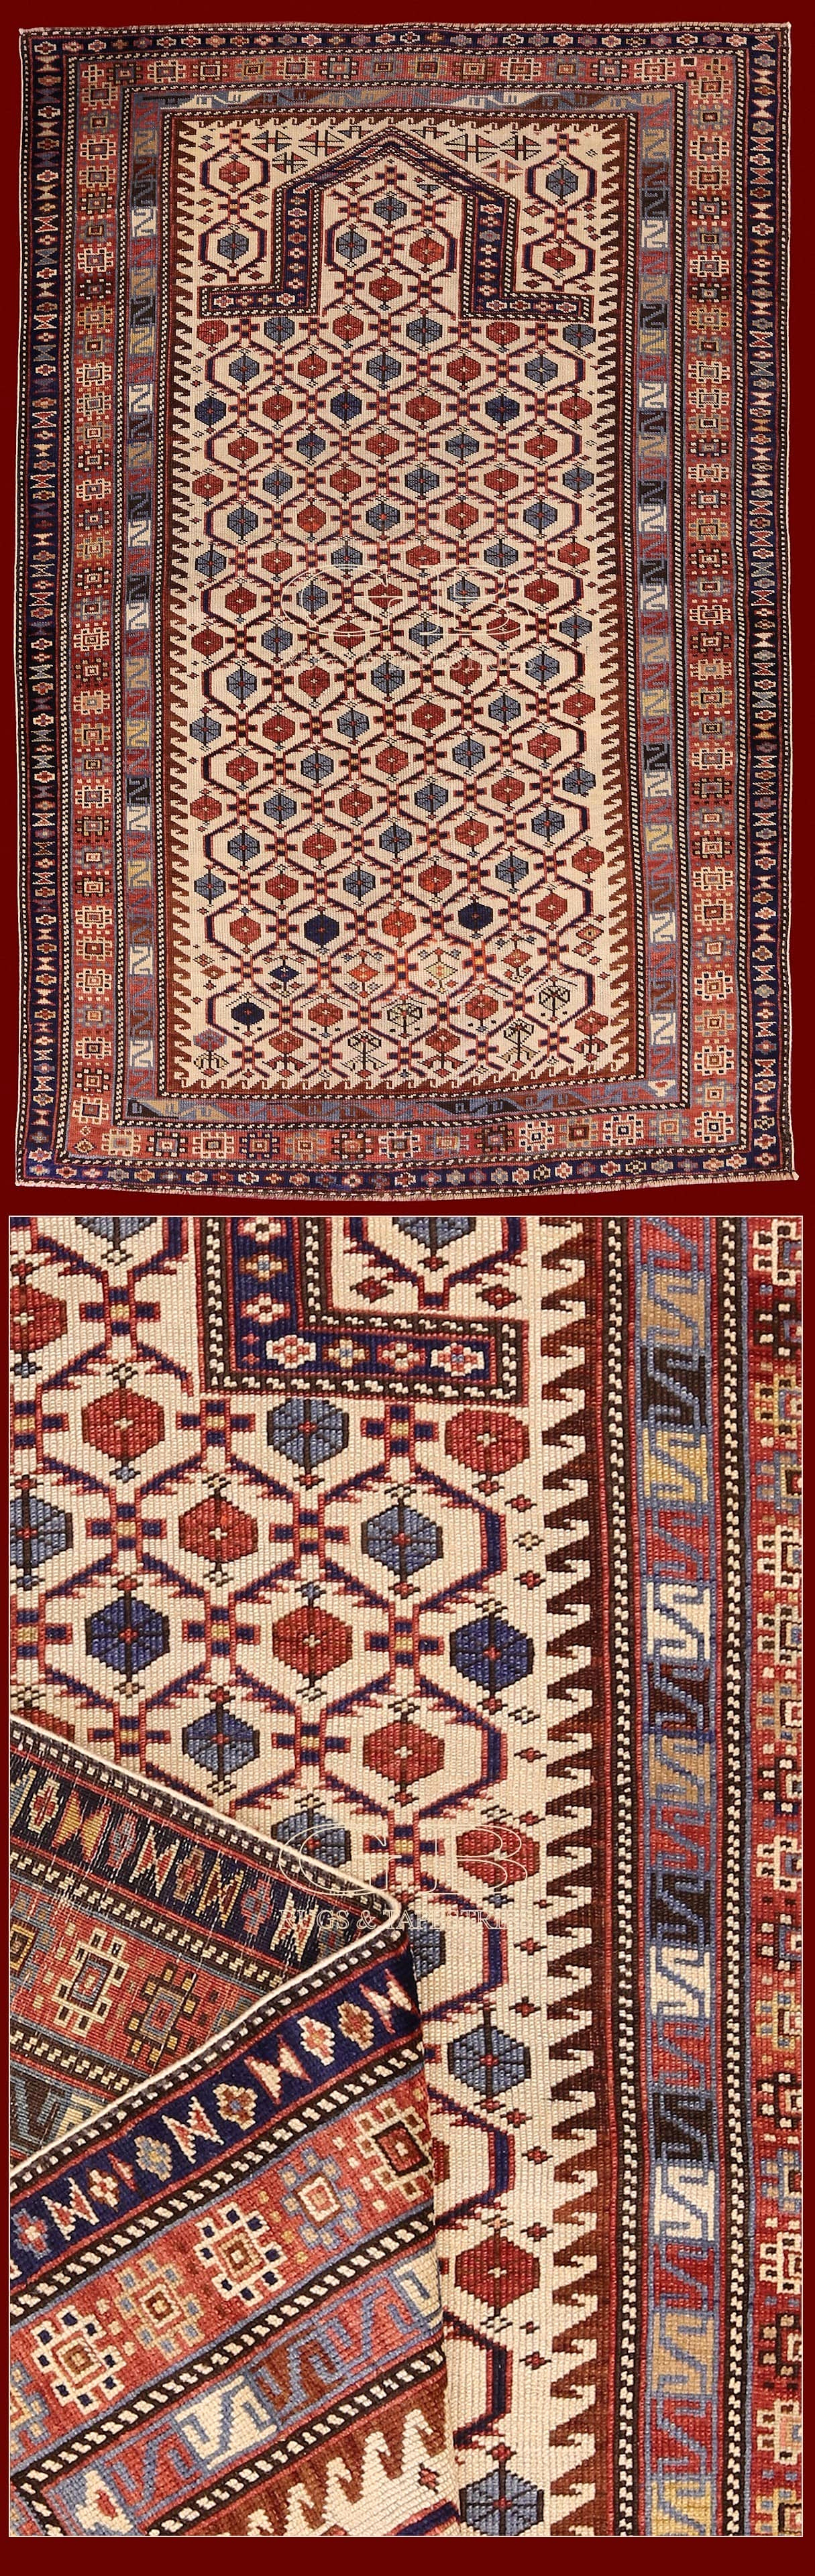 Kelim Teppich Ebay Best Antique Shirvan Rug Caucasus 178 X 118 Cm 5 84 X 3 87 Ft Cod